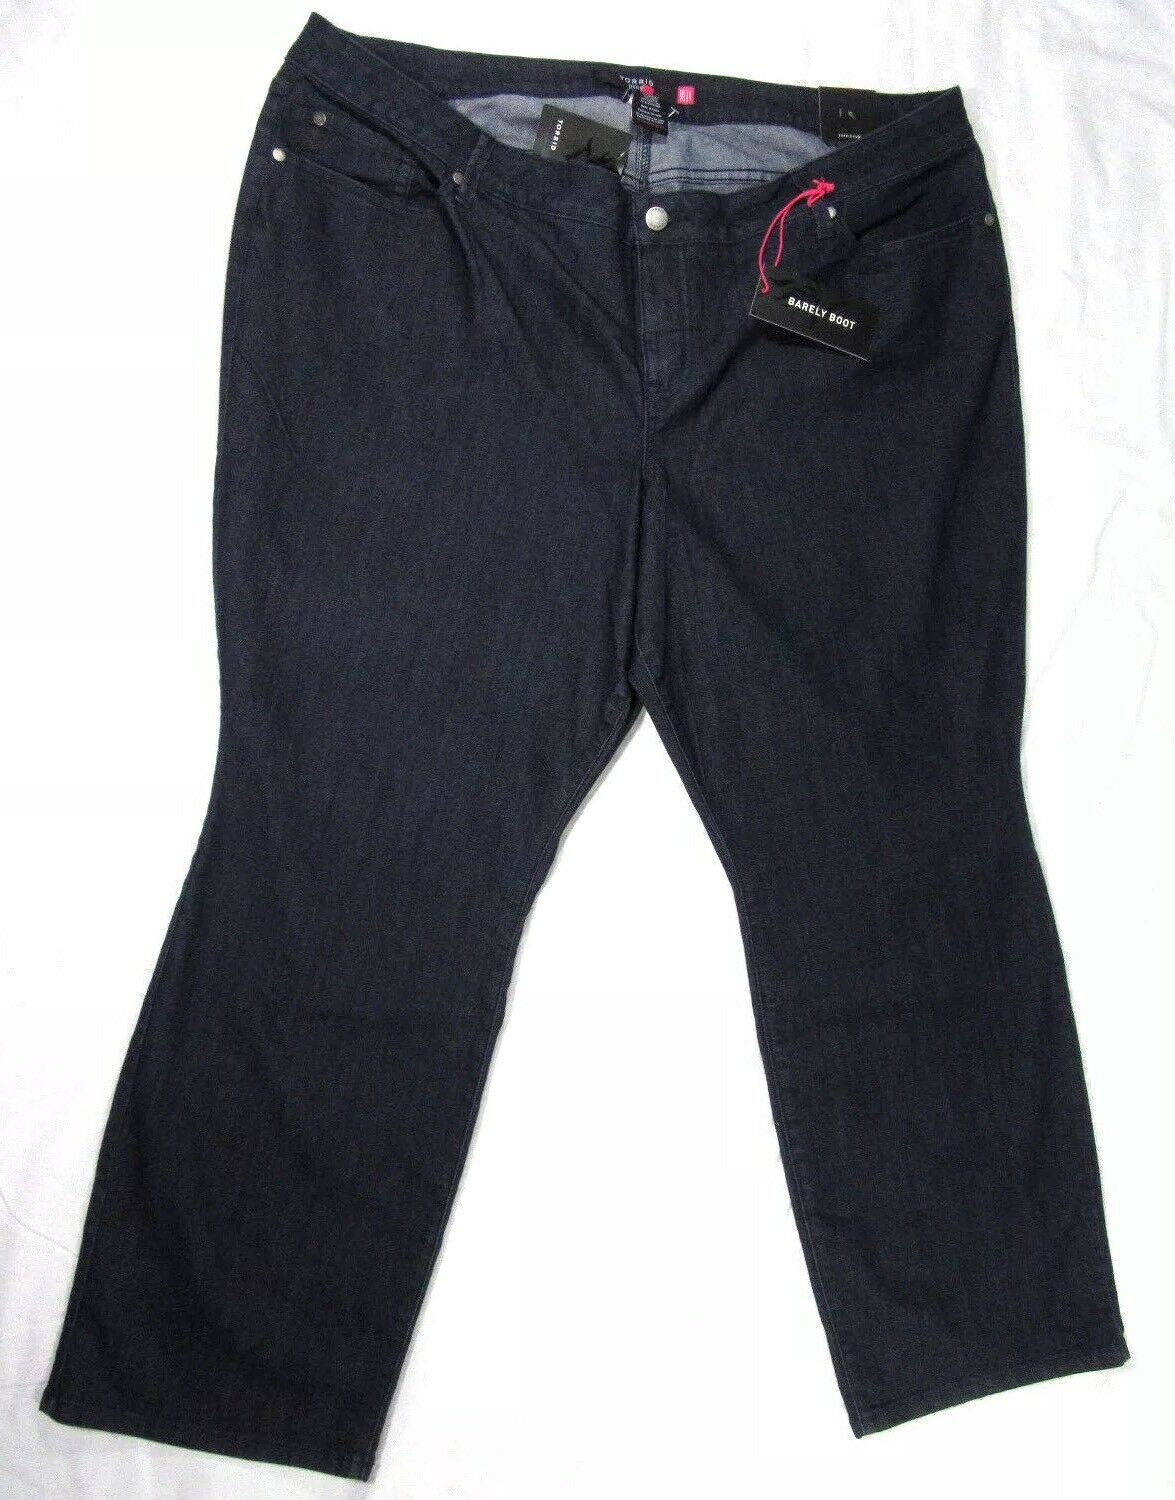 TORRID Barely Boot Jeans Indigo Dark Rinse Slim Fit Midrise Size 26R NWT